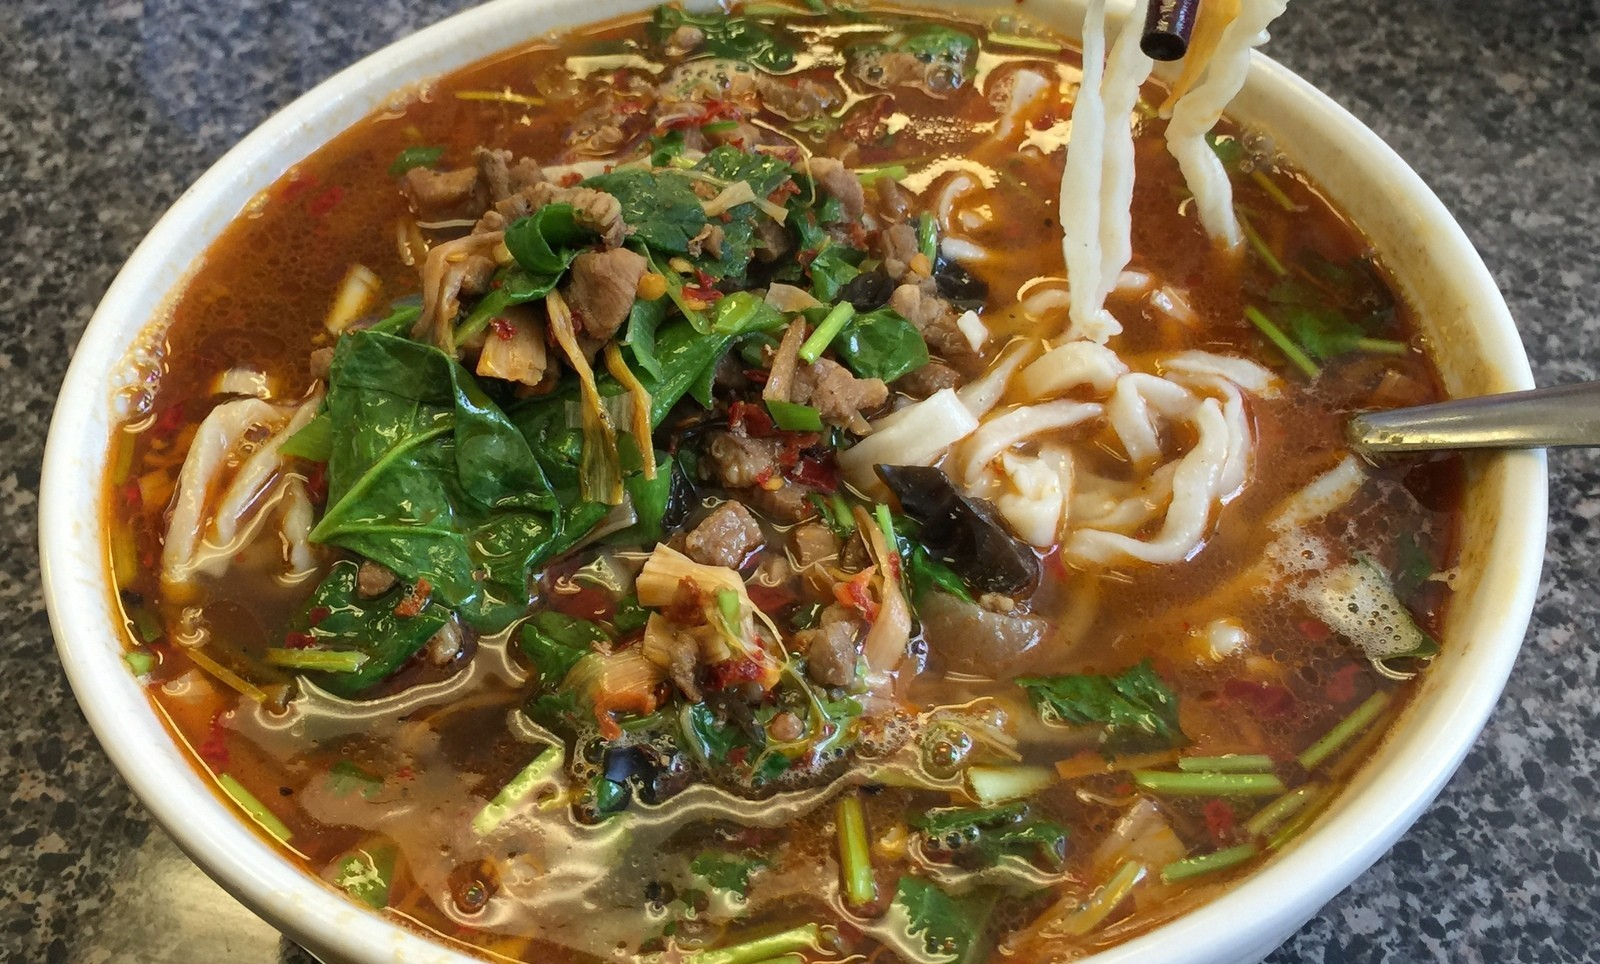 Qishan minced pork noodle, with house-made noodles, at Home Taste (Andrew Galarneau/Buffalo News)